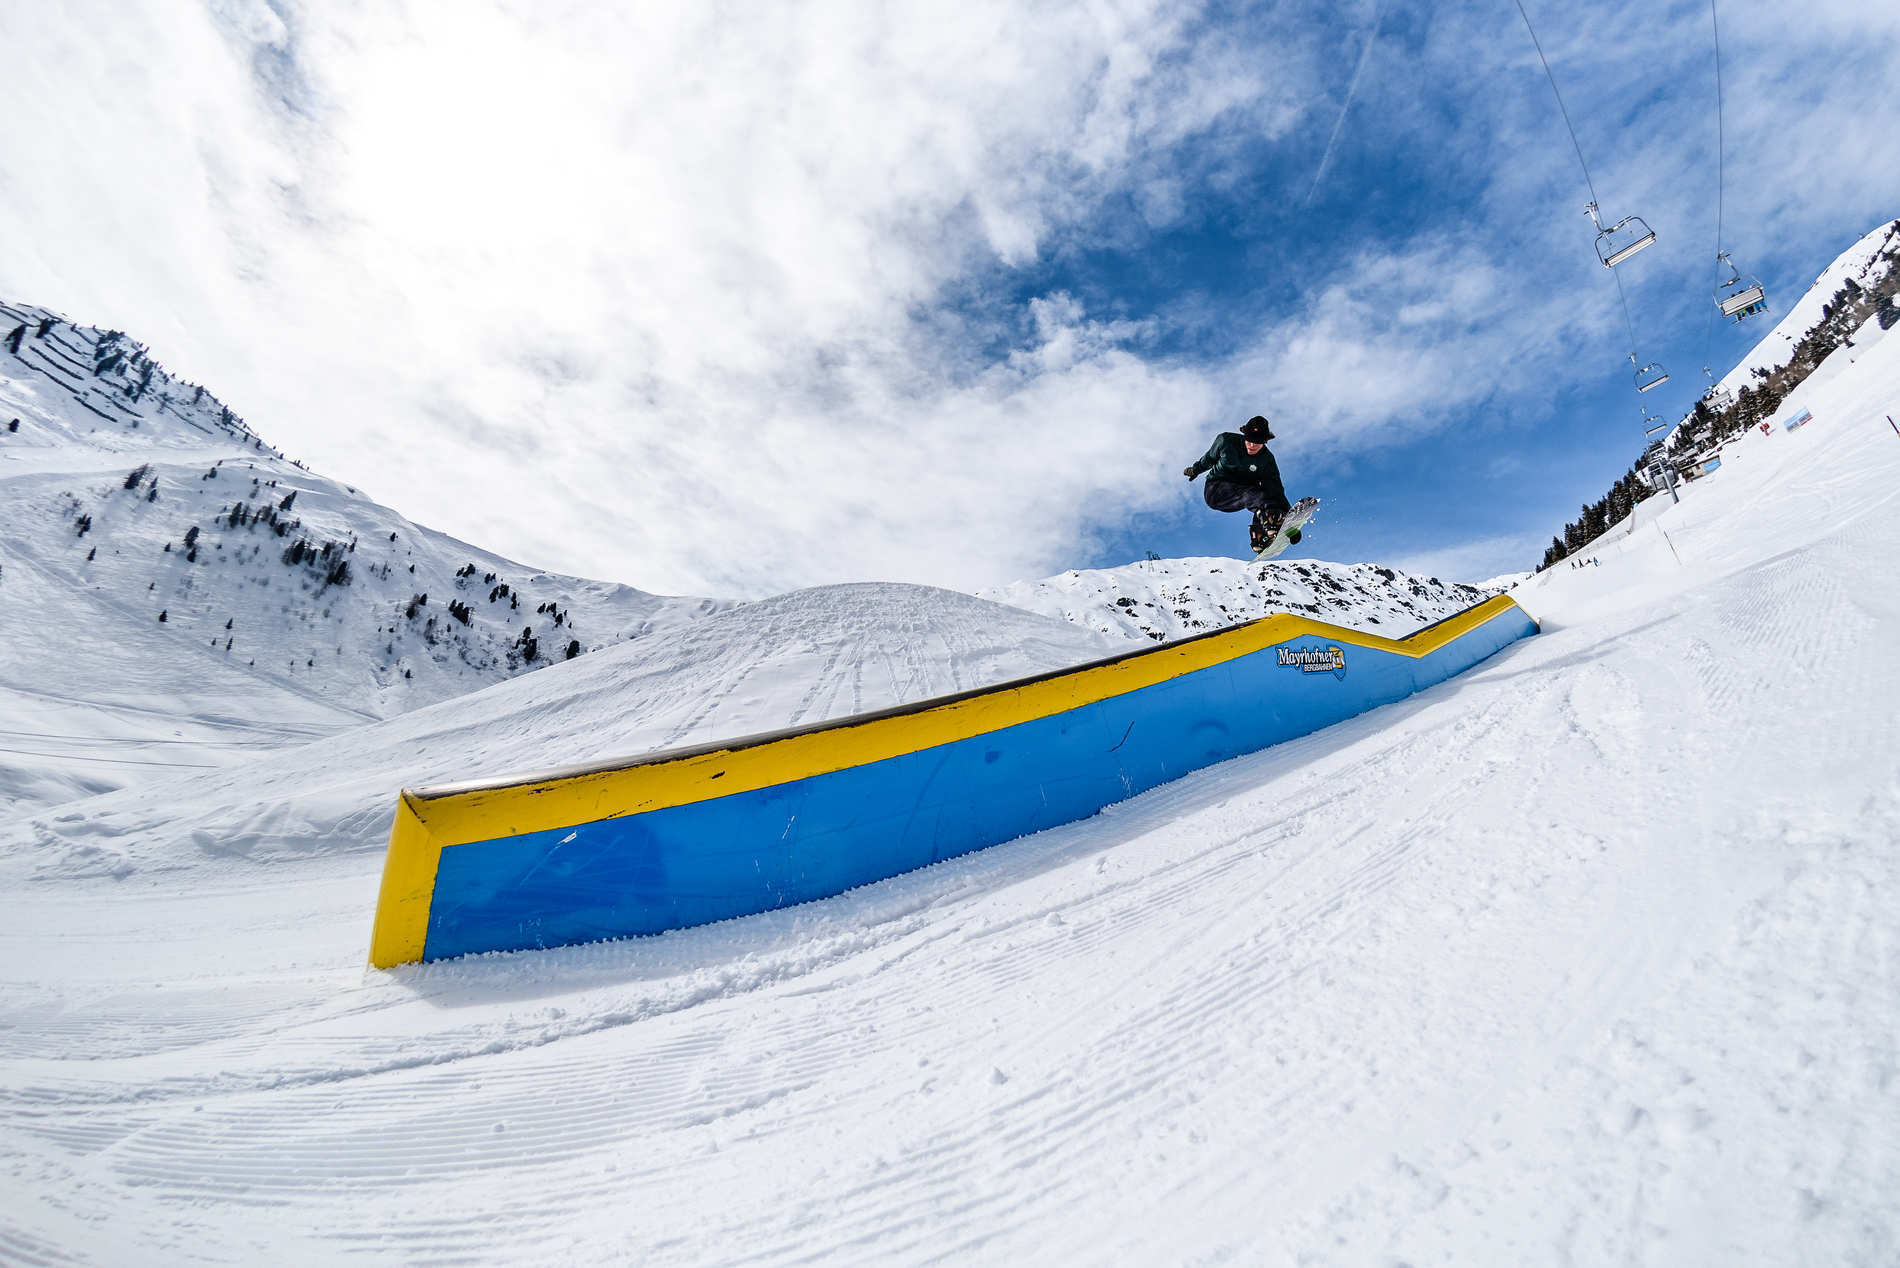 web mayrhofen 22 03 2018 action sb kevin trammer christian riefenberg qparks 6